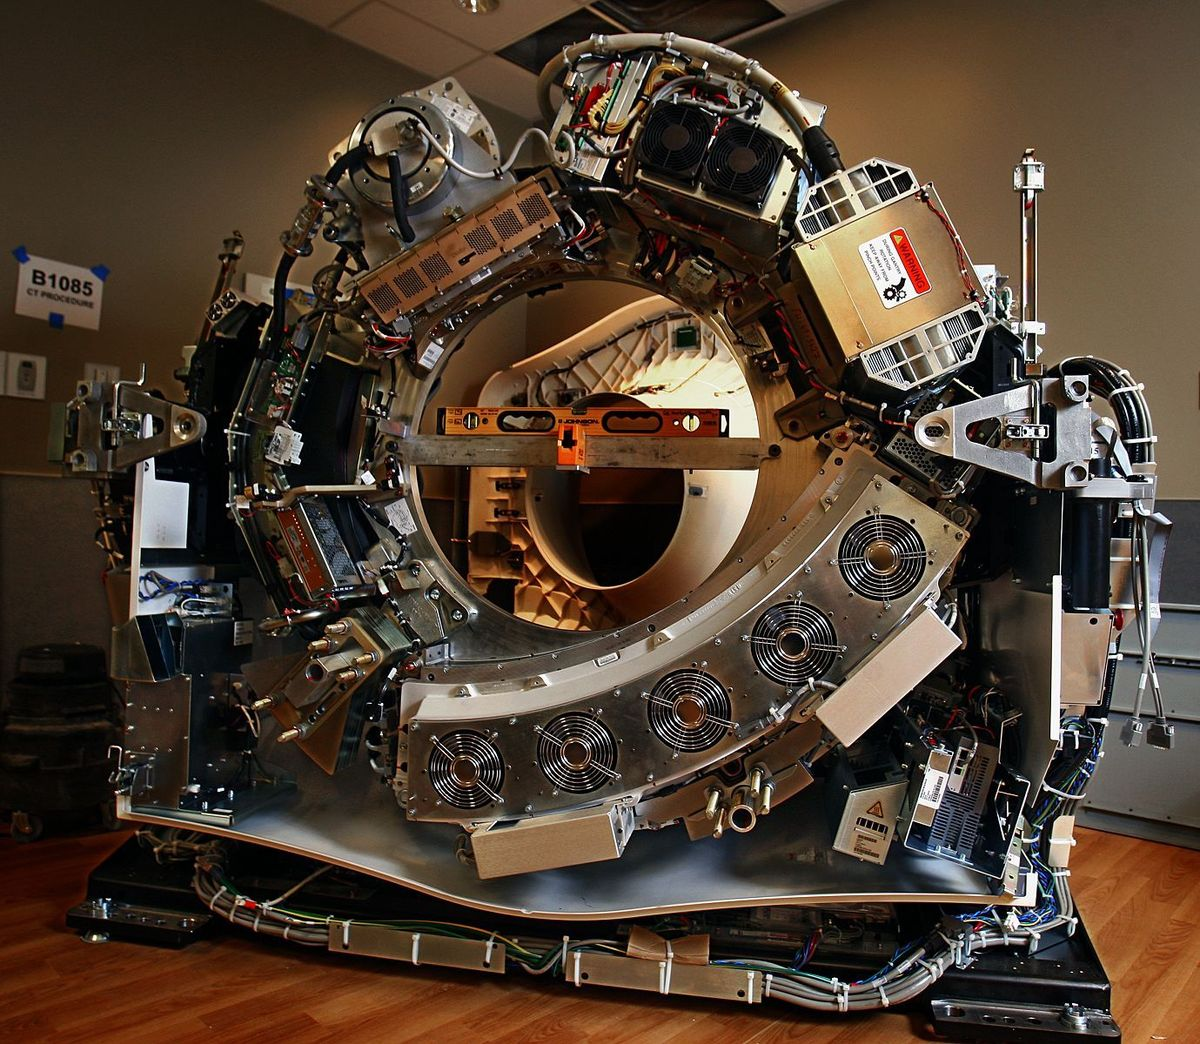 tranformer/CT scanner